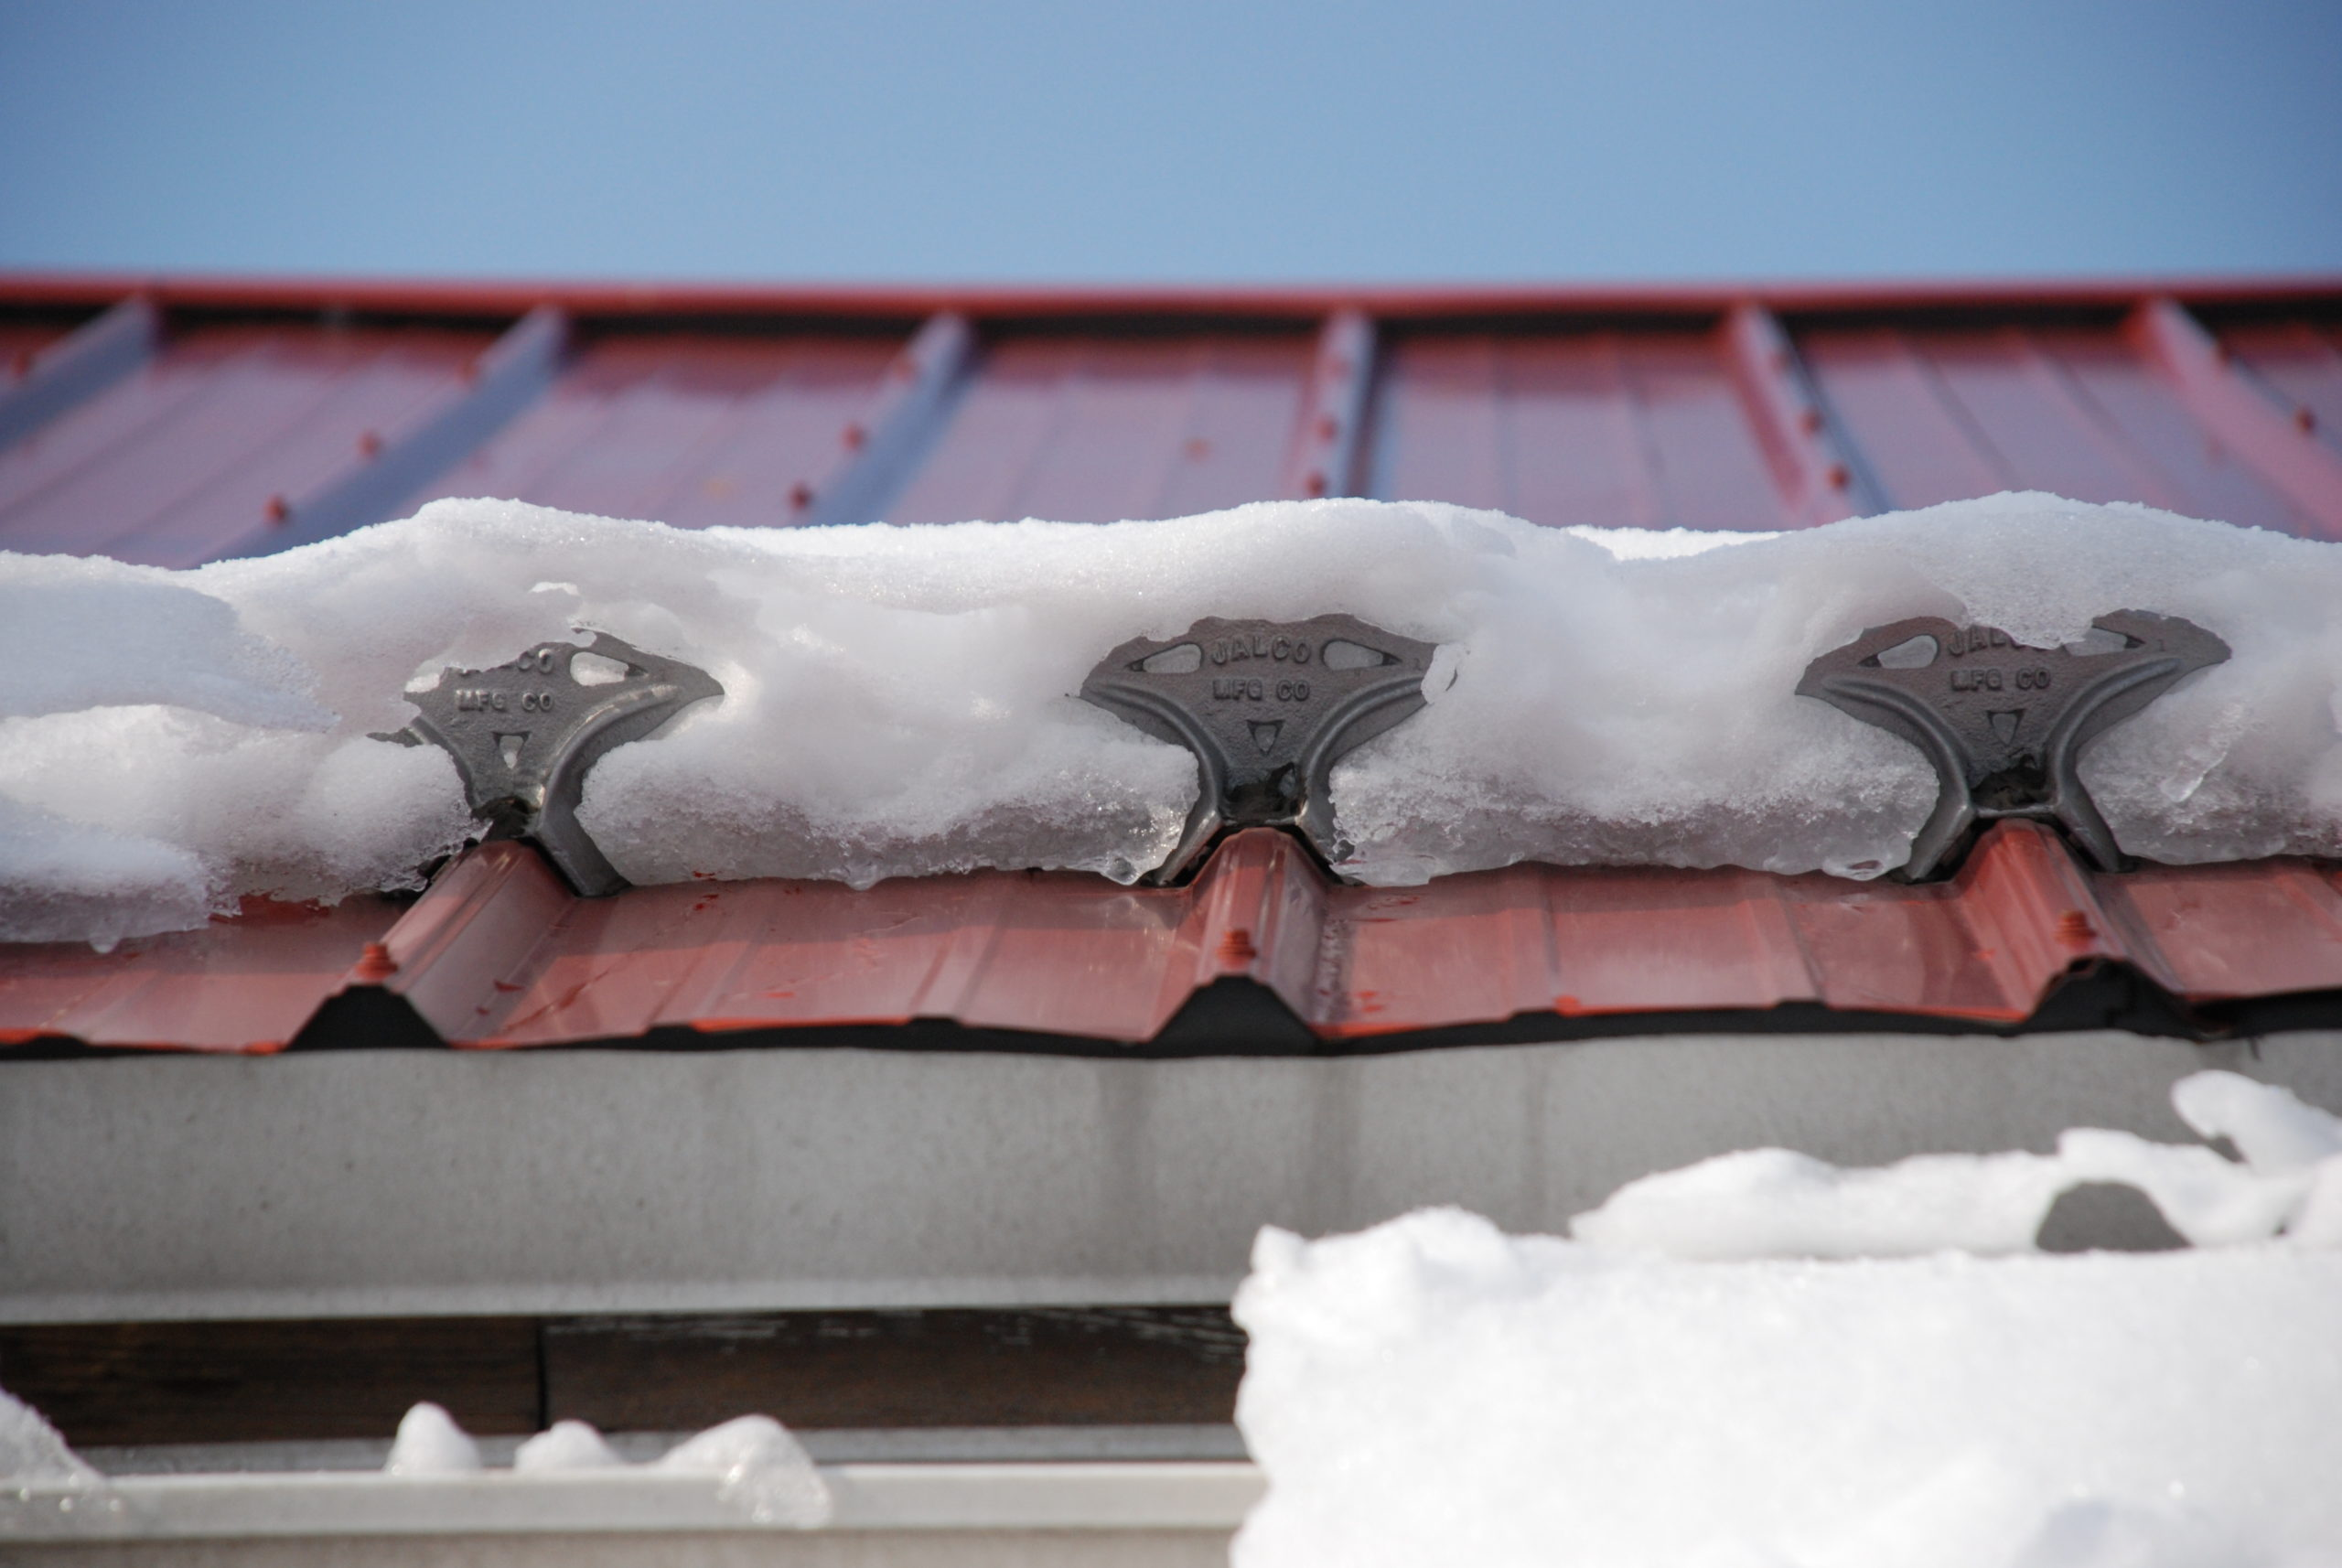 jalco snowguards red metal roof with snowguards and snow closeup